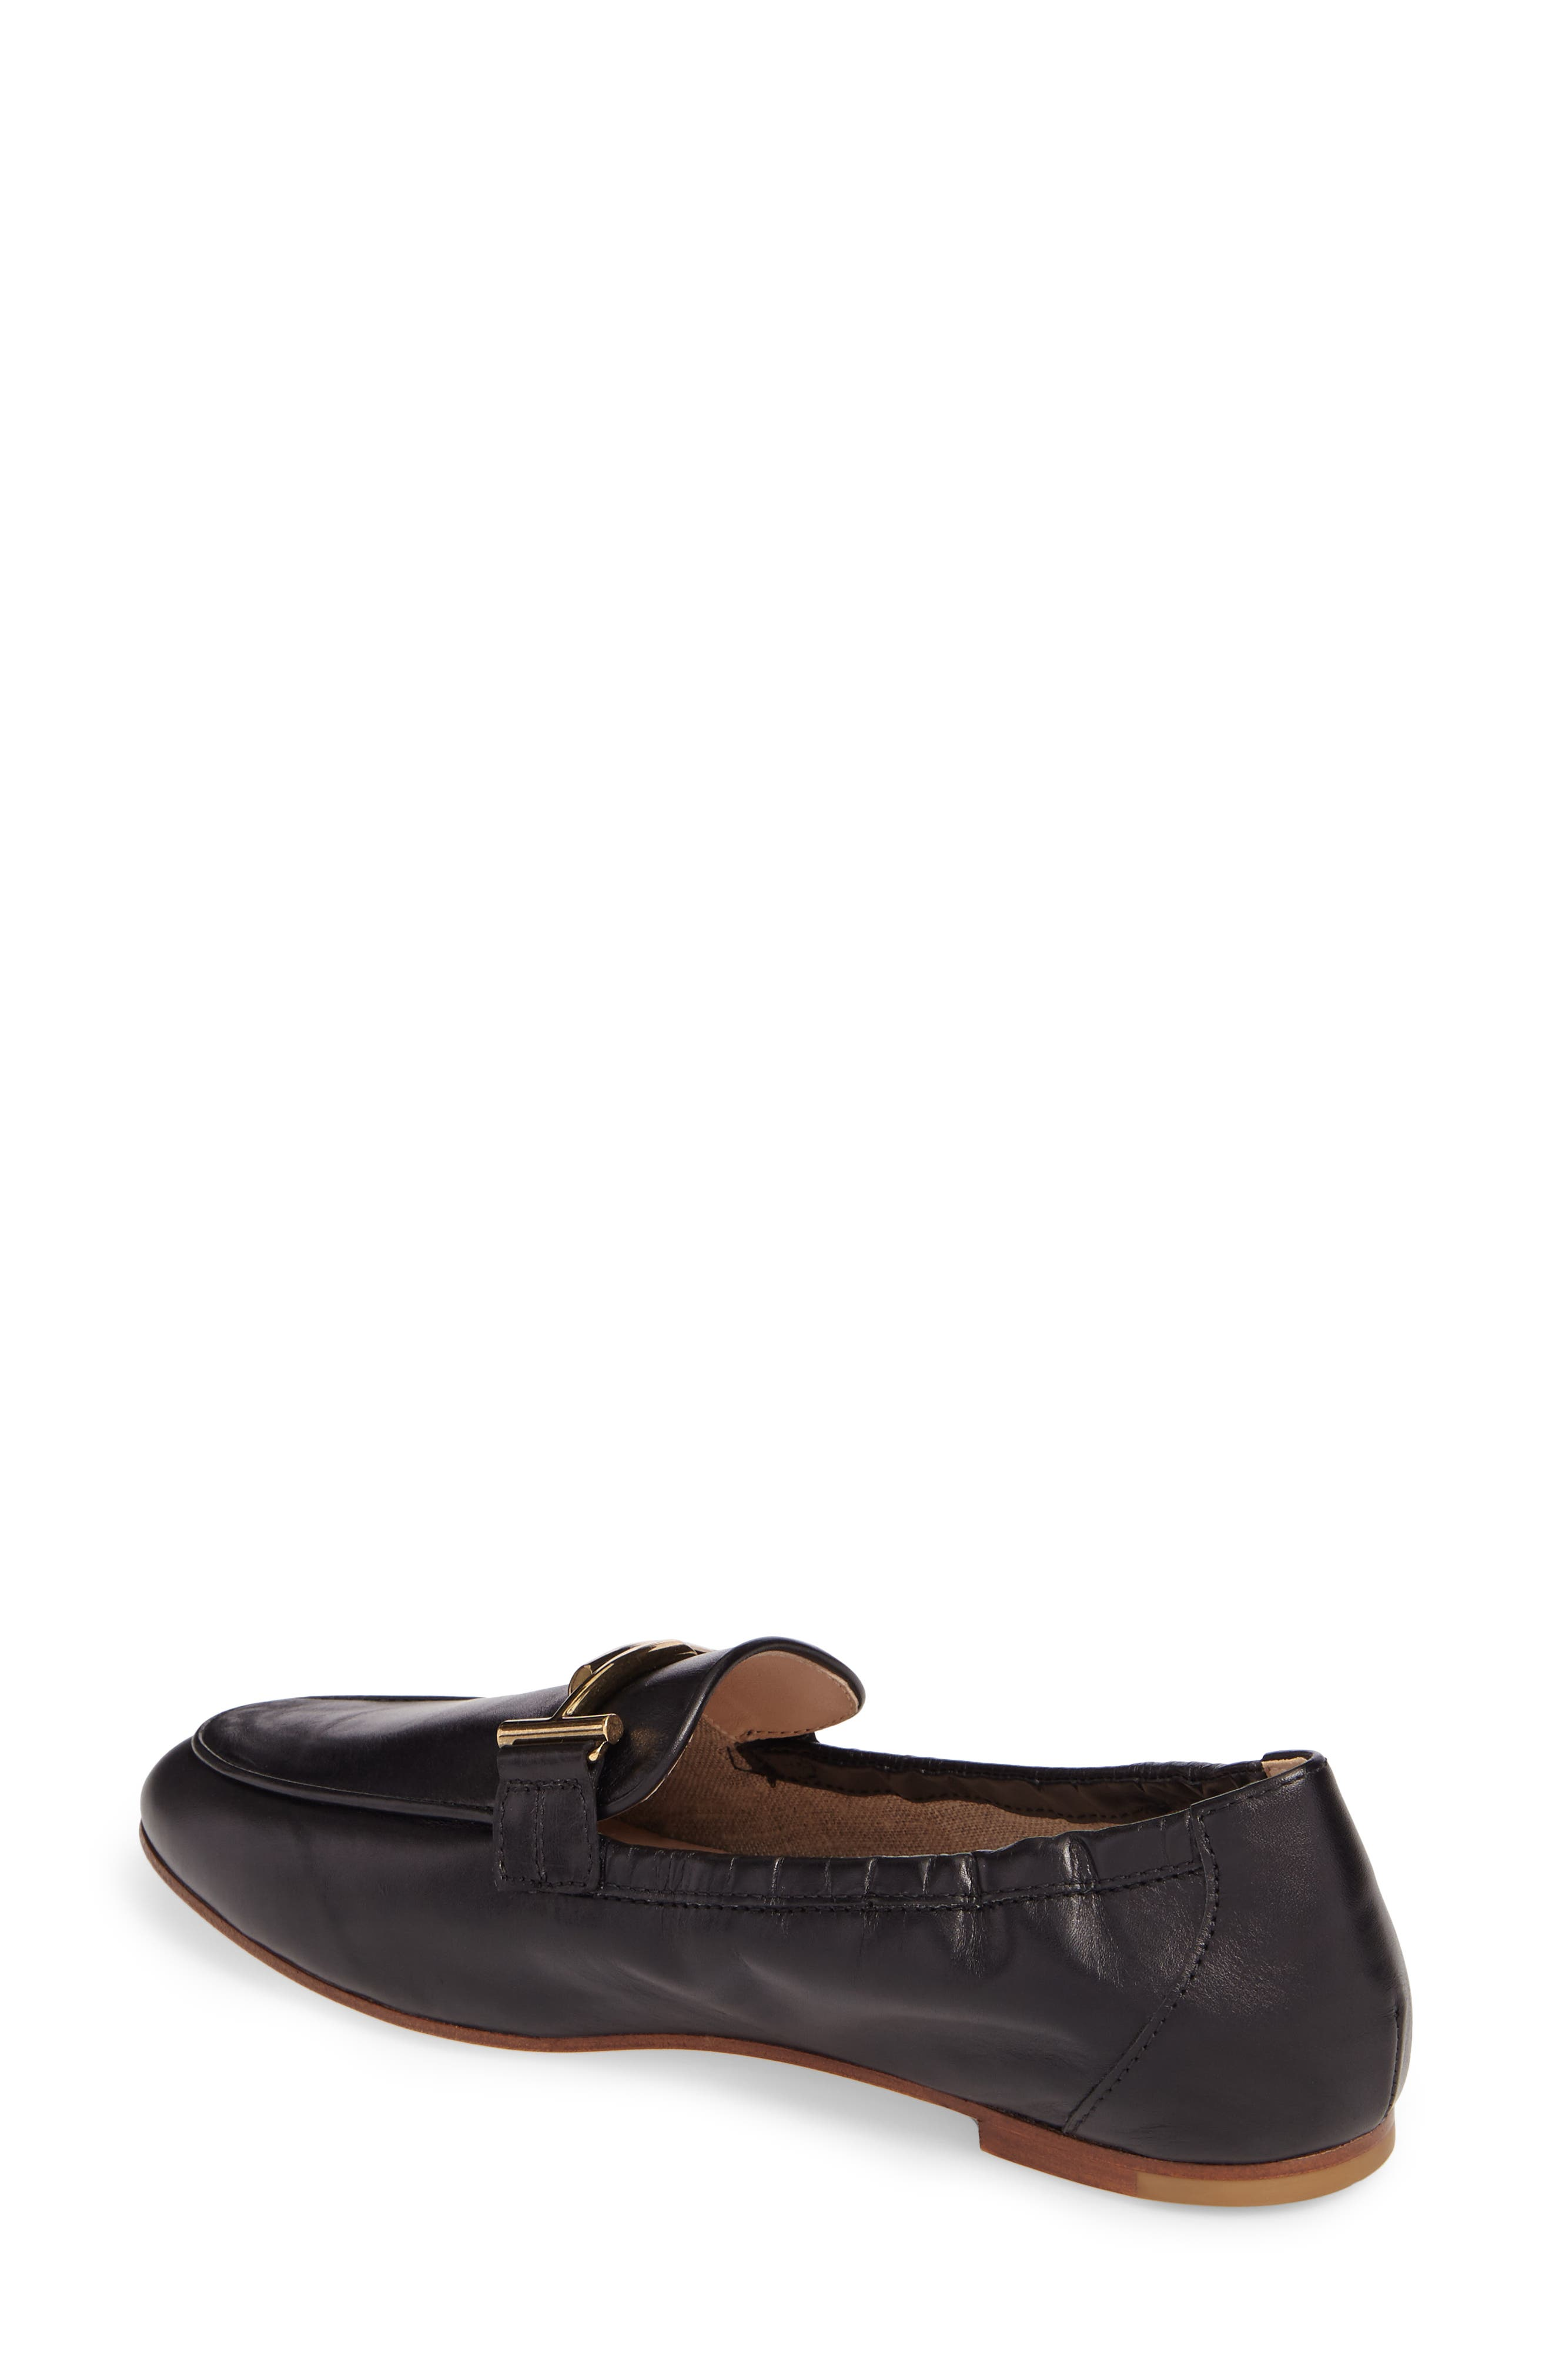 Double T Scrunch Loafer,                             Alternate thumbnail 2, color,                             Black